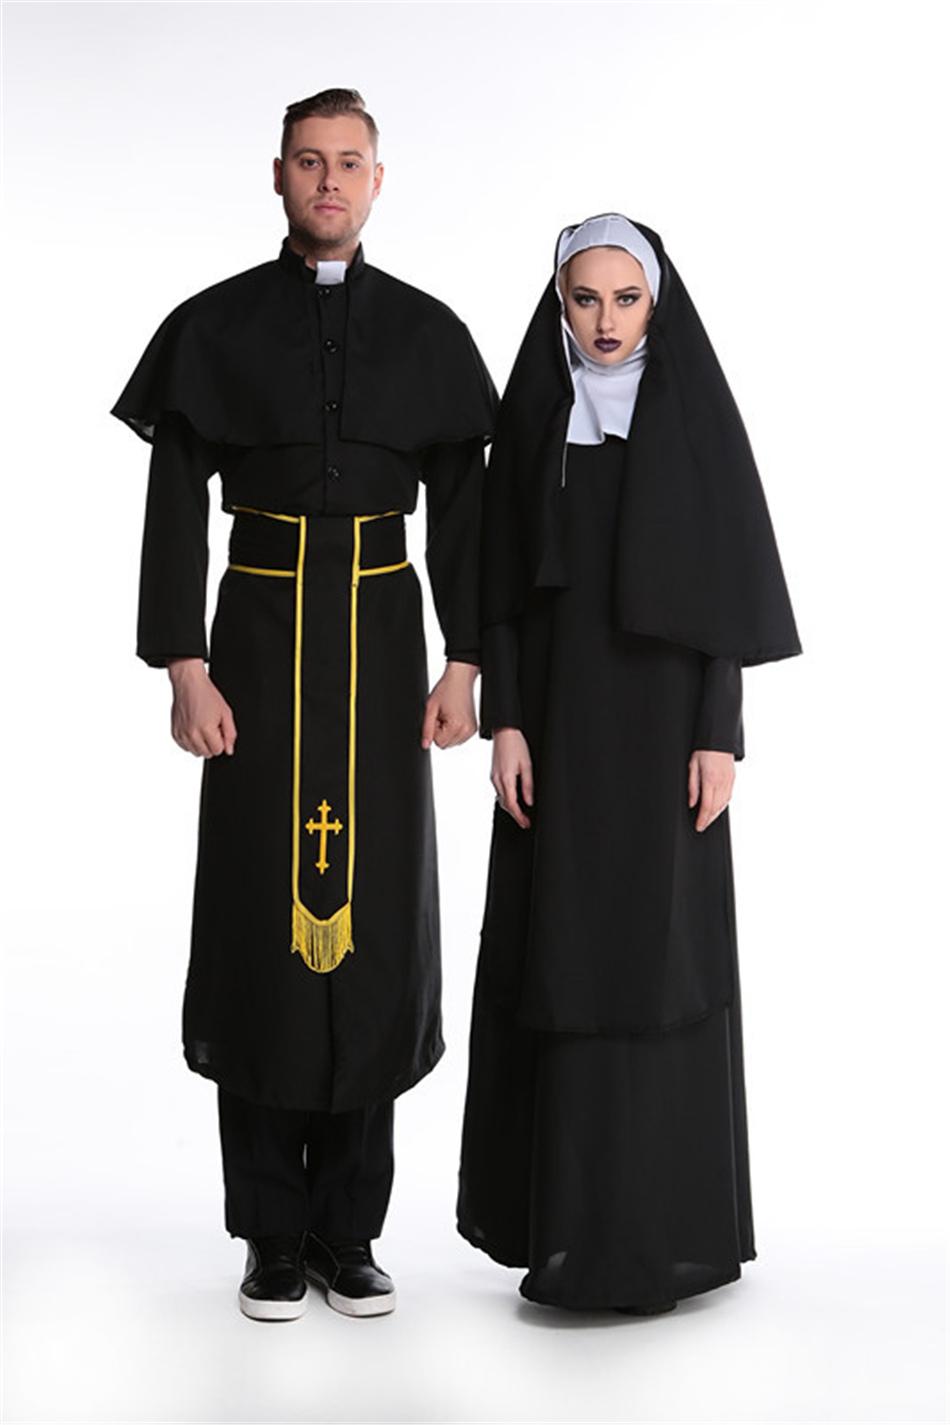 Medieval Cosplay Halloween Costumes for Women Priest Nun Missionary Costume Set 8